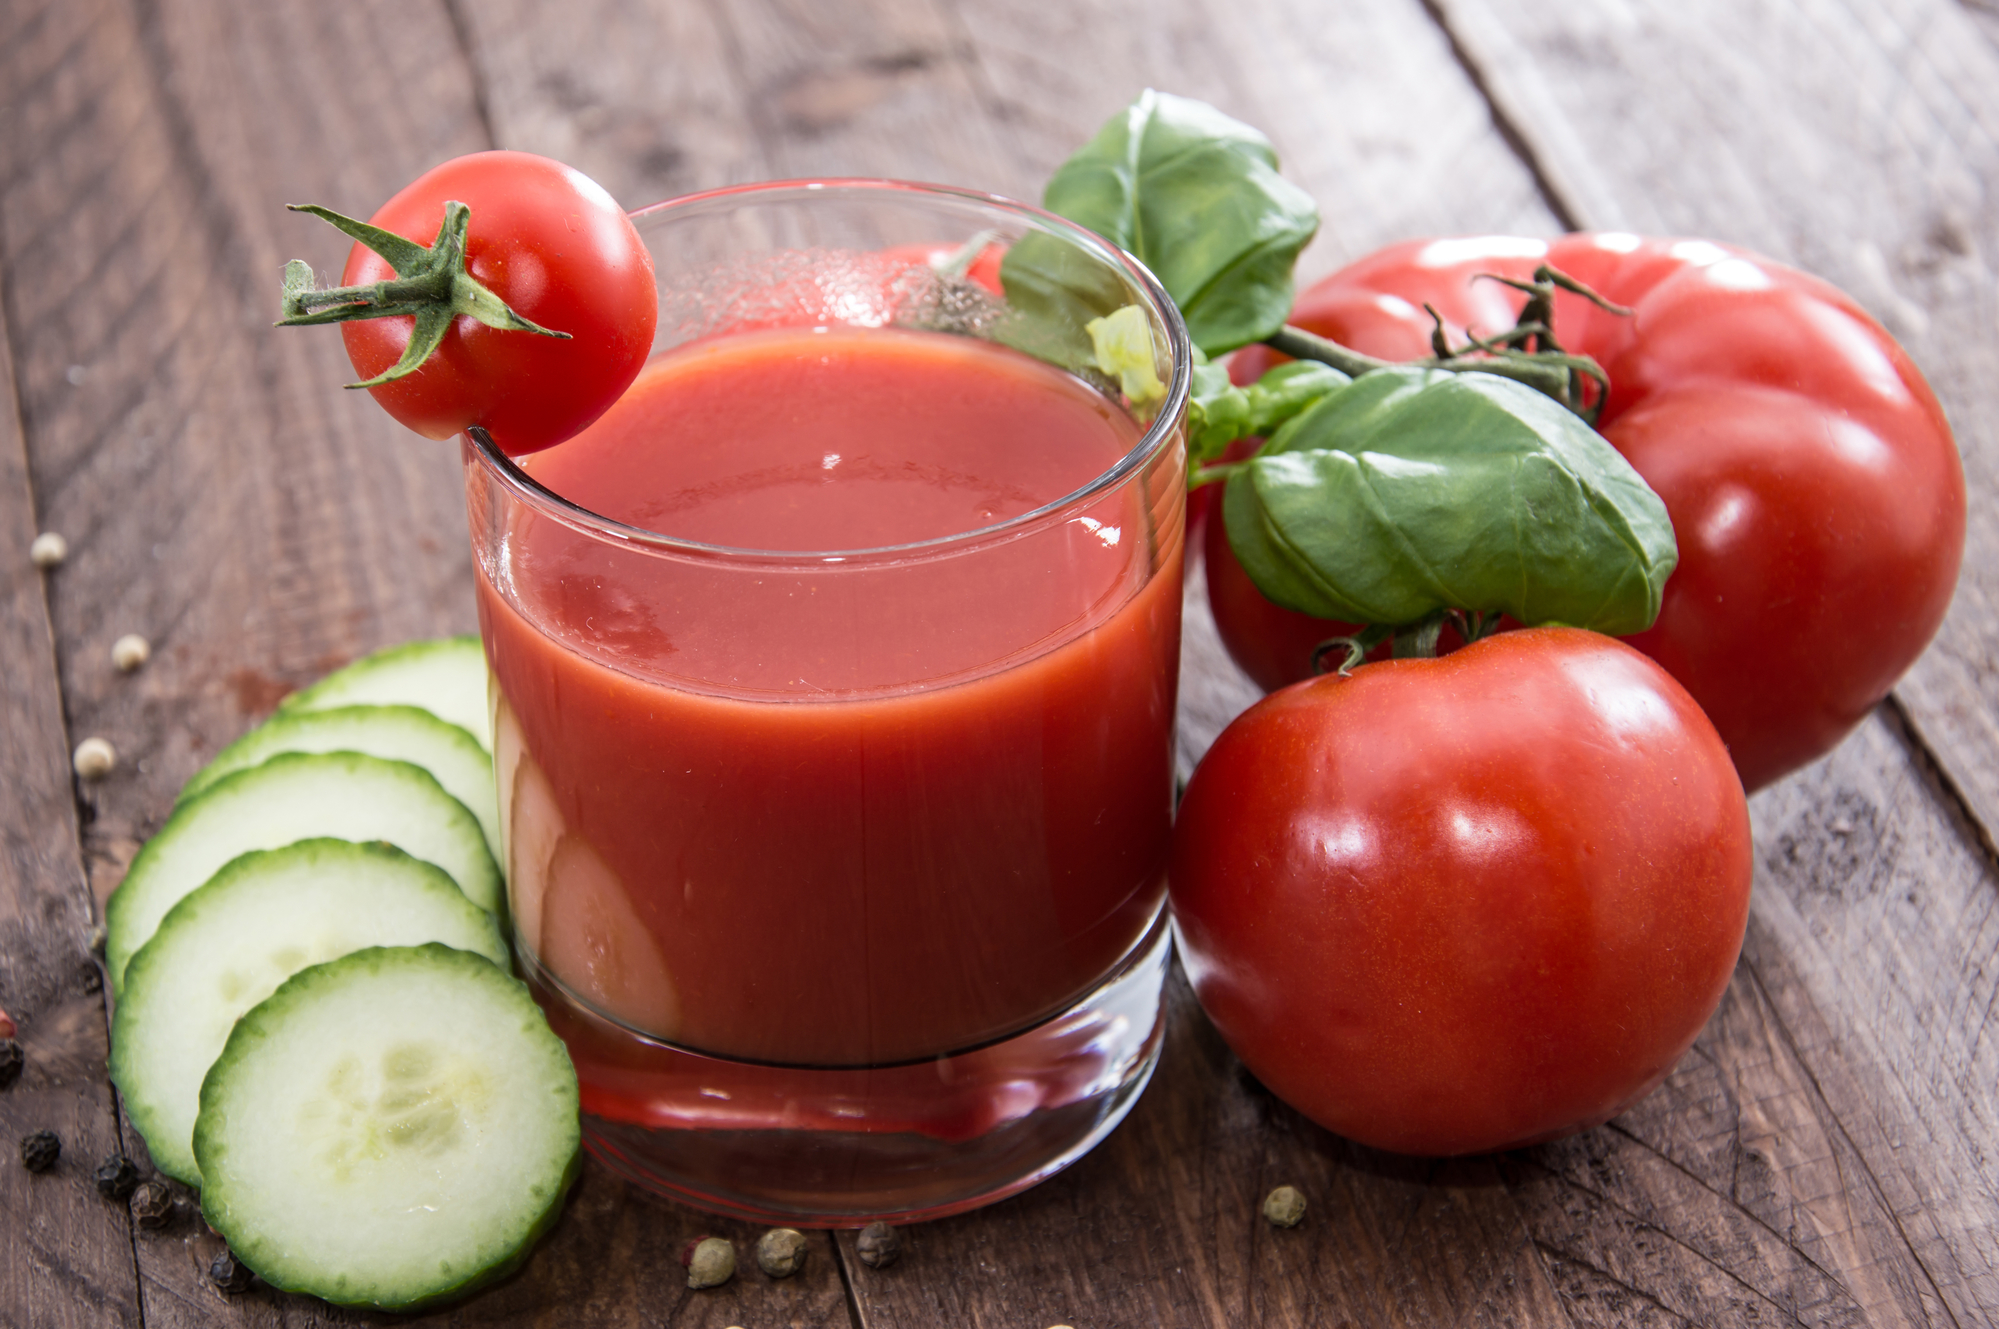 Tomato juice fresh - Do Antioxidants Impact Athletic Training?